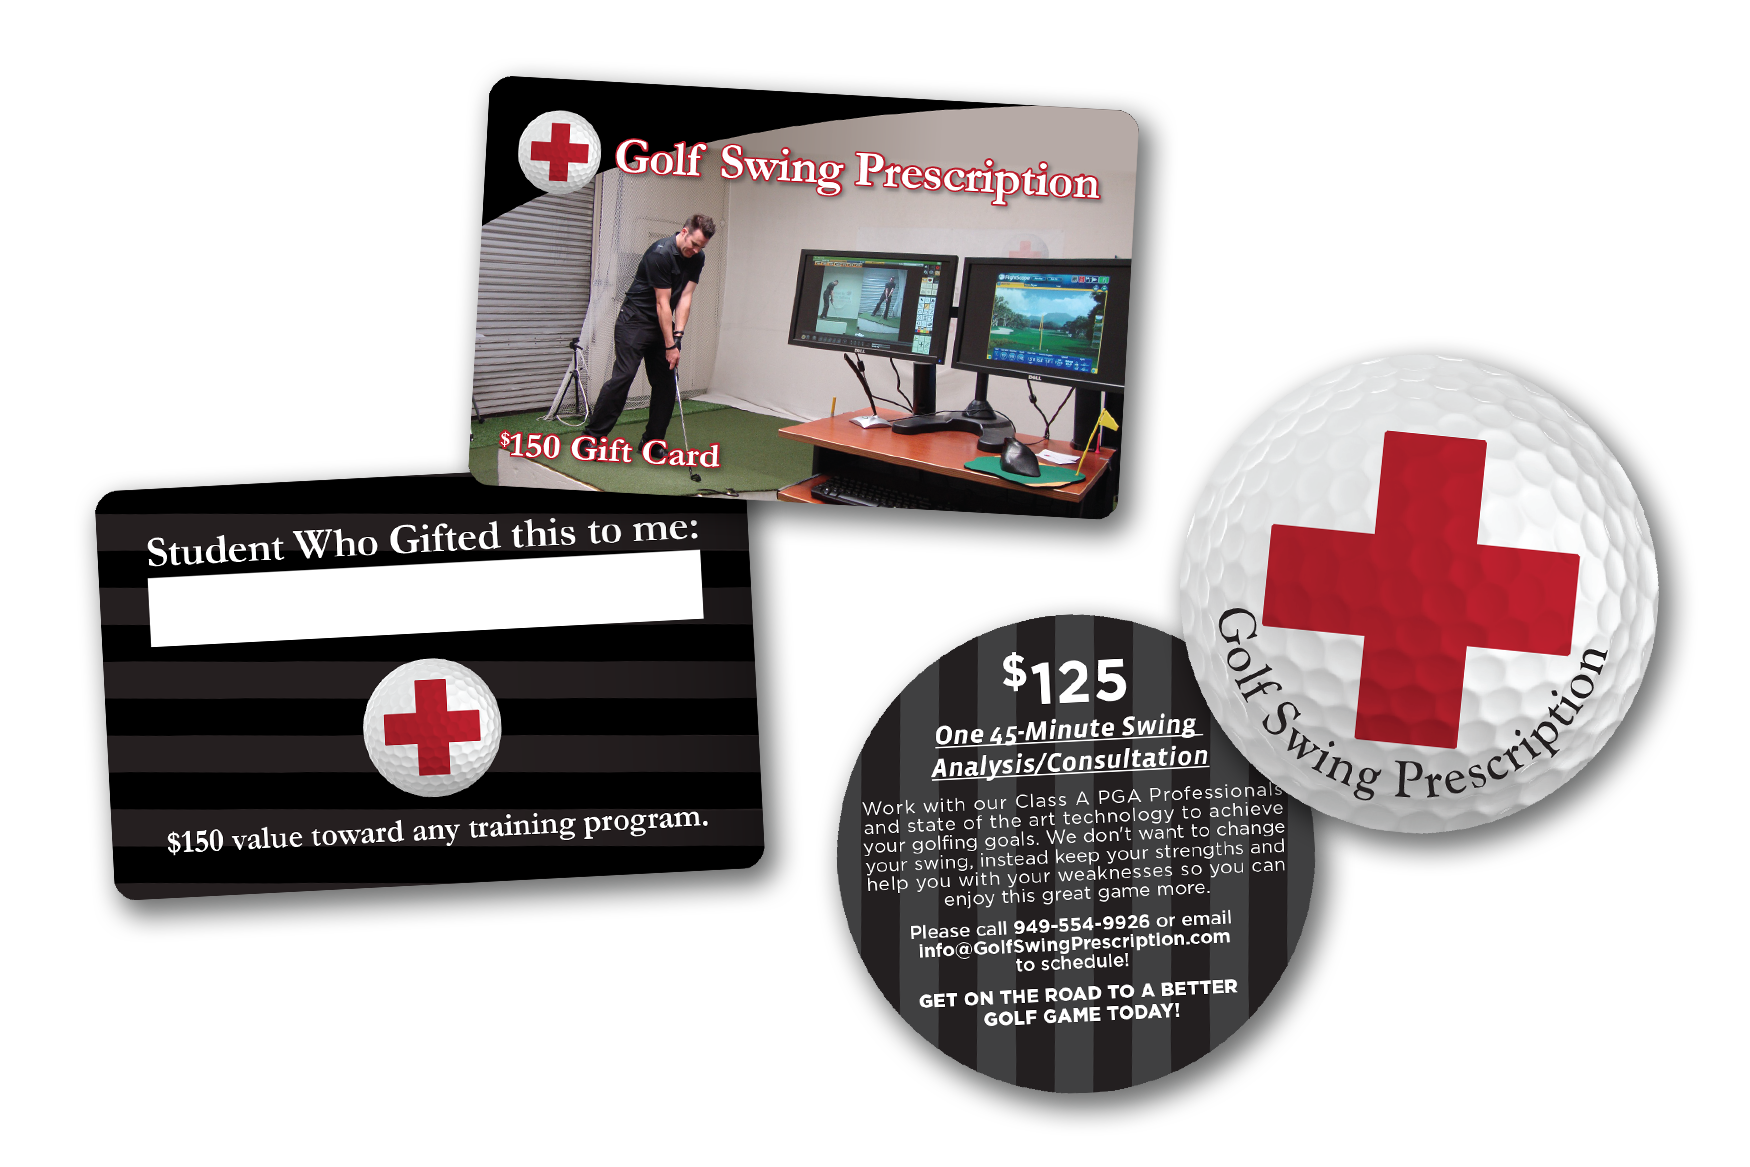 Face Value Golf Gift Cards for Golf Swing Prescription